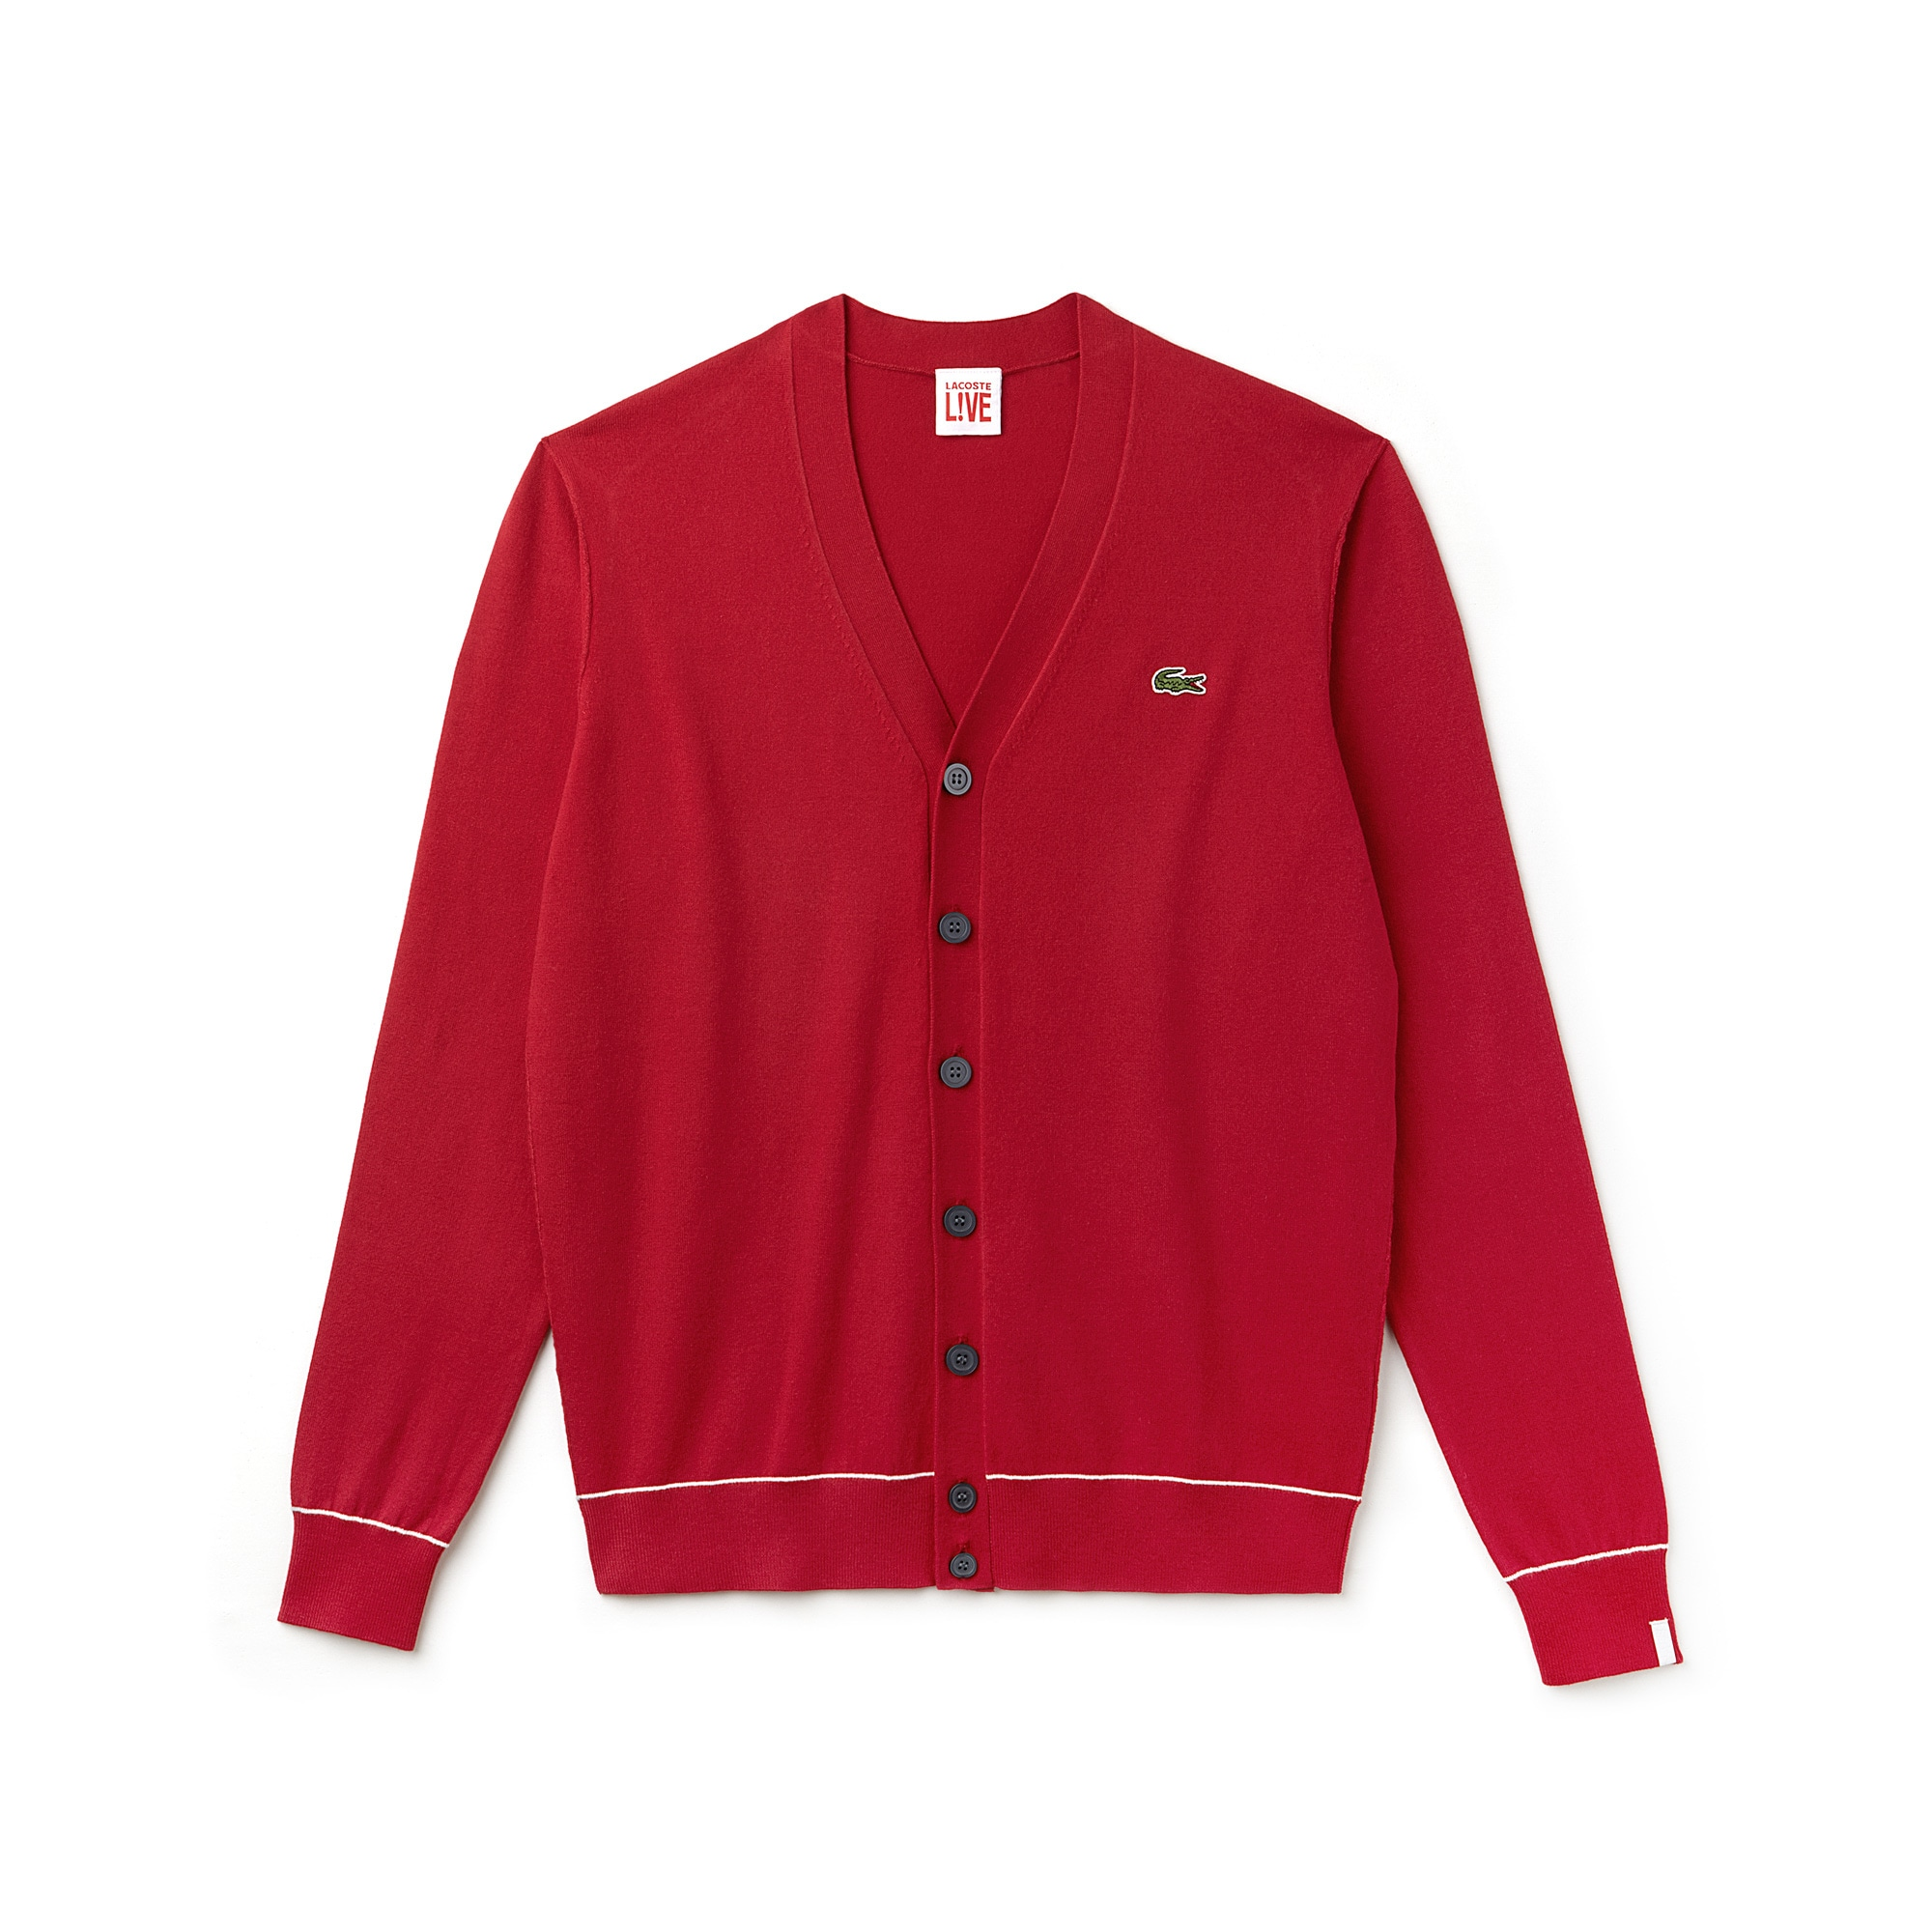 Men's Lacoste LIVE Cotton And Silk Jersey Cardigan